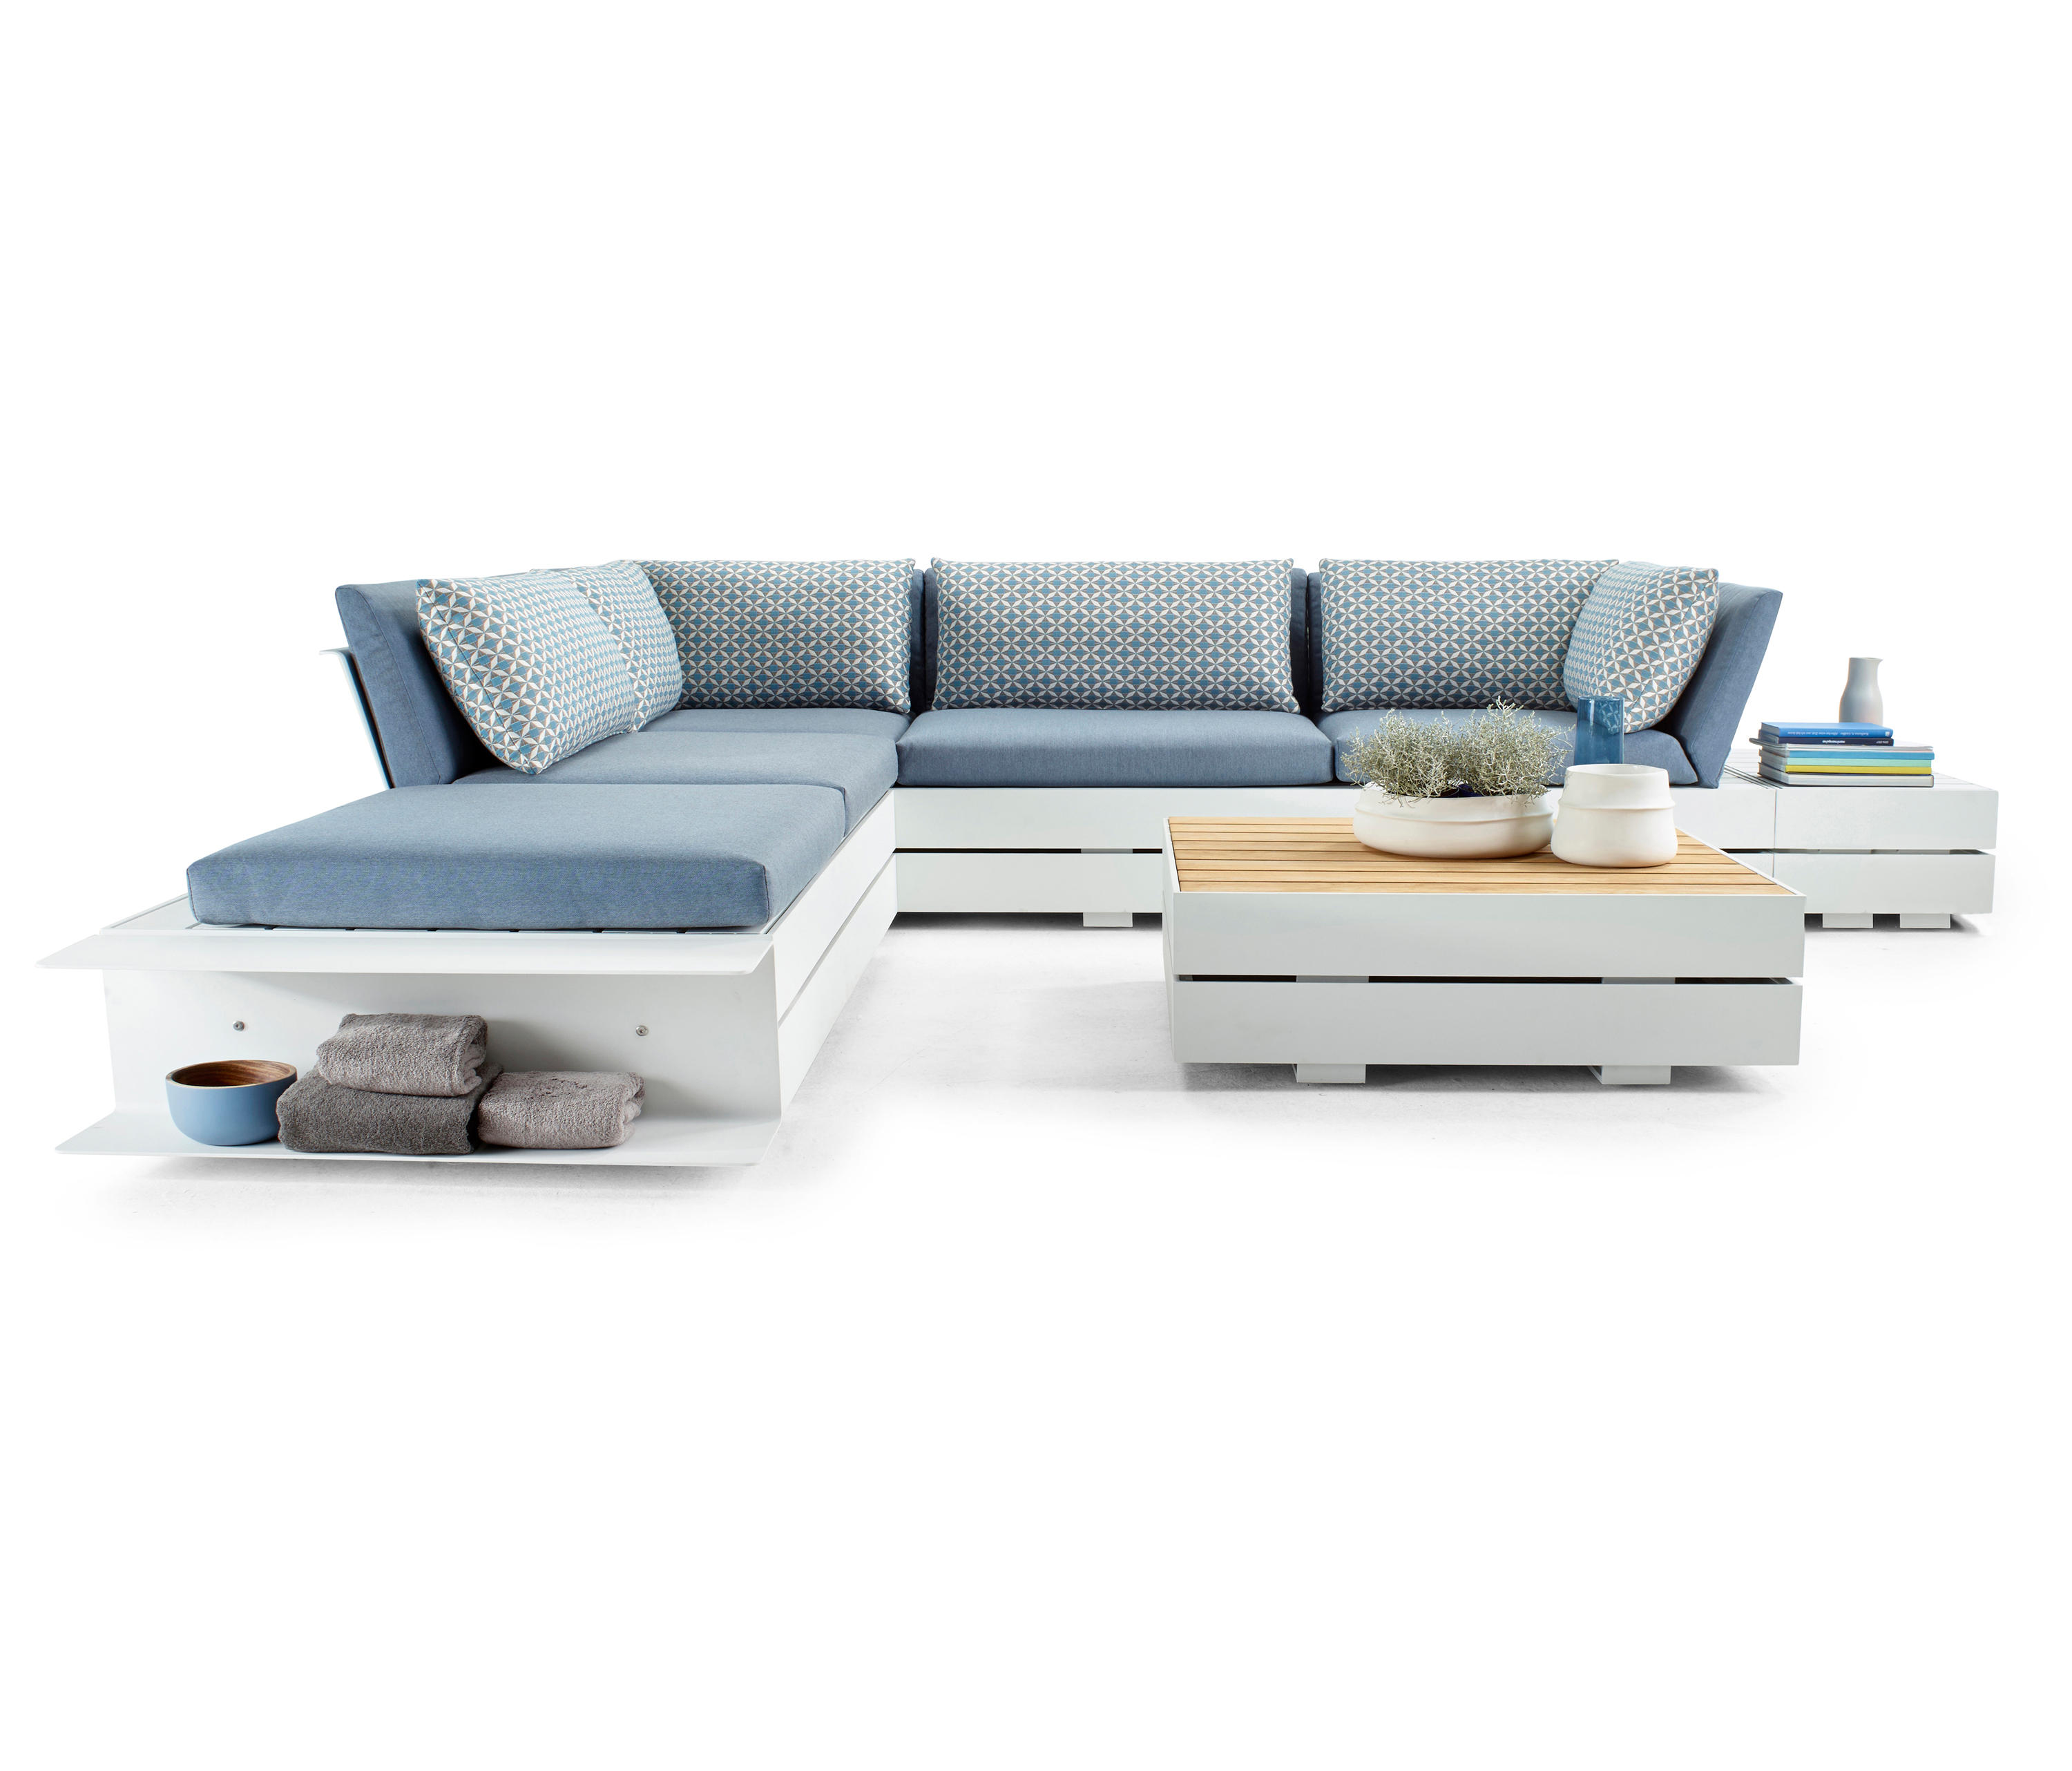 Boxx Lounge Sofas From Solpuri Architonic